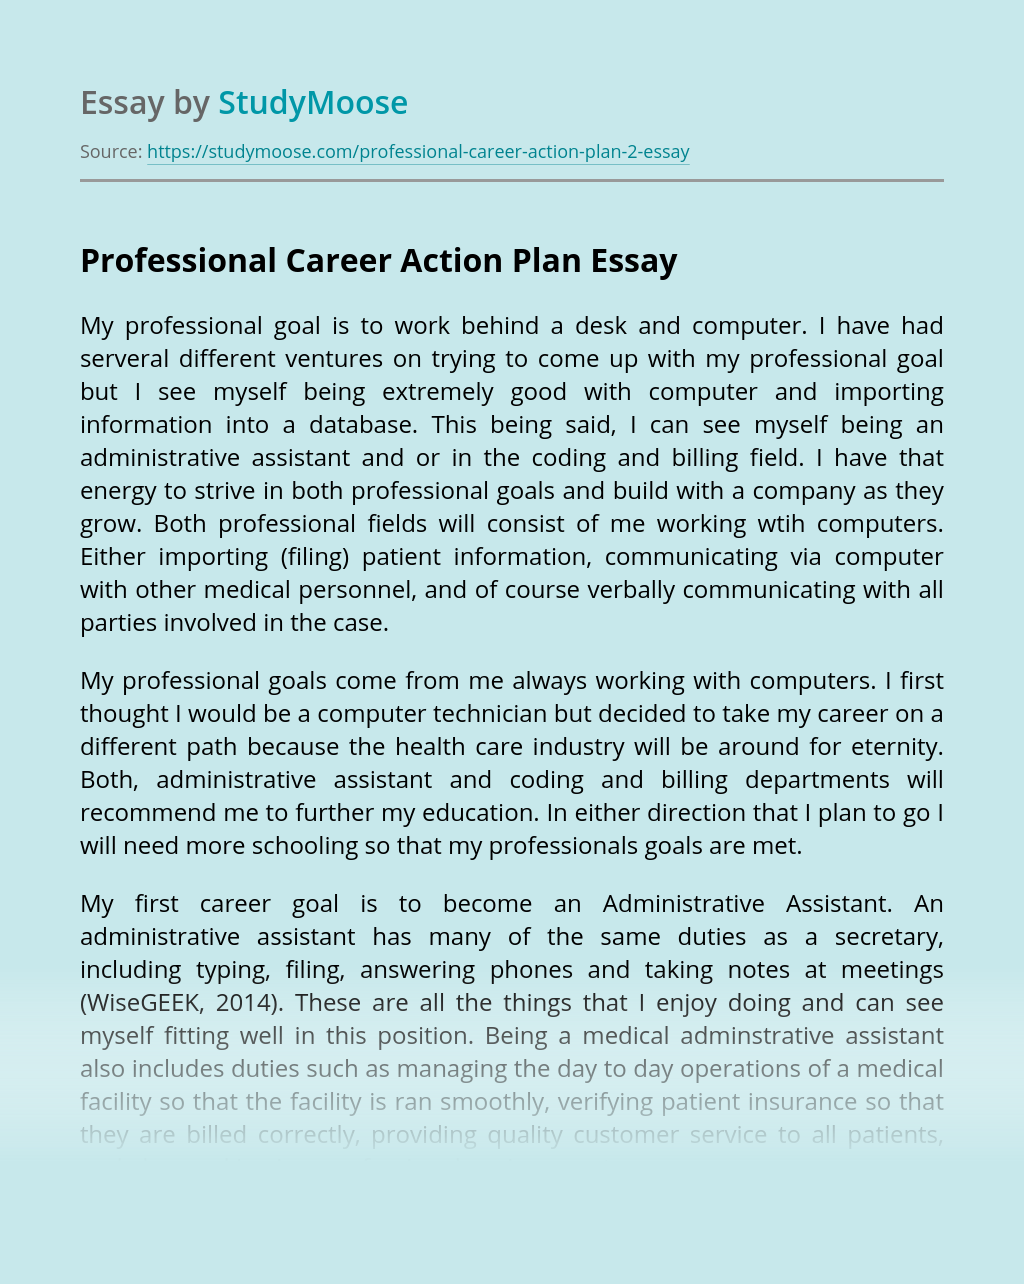 Professional Career Action Plan